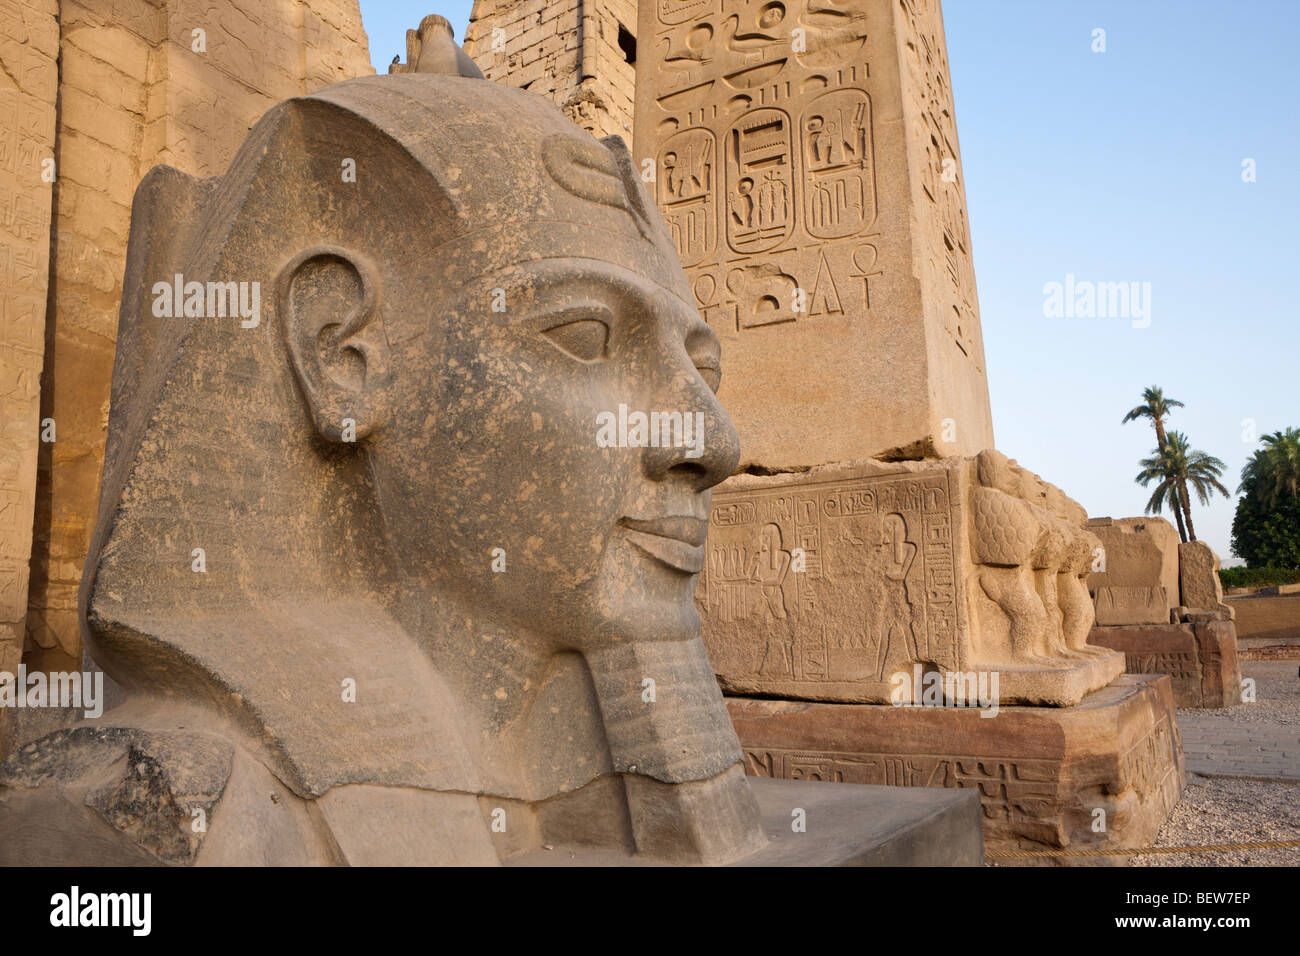 Head of Ramesses II Statue at Luxor Temple, Luxor, Egypt - Stock Image